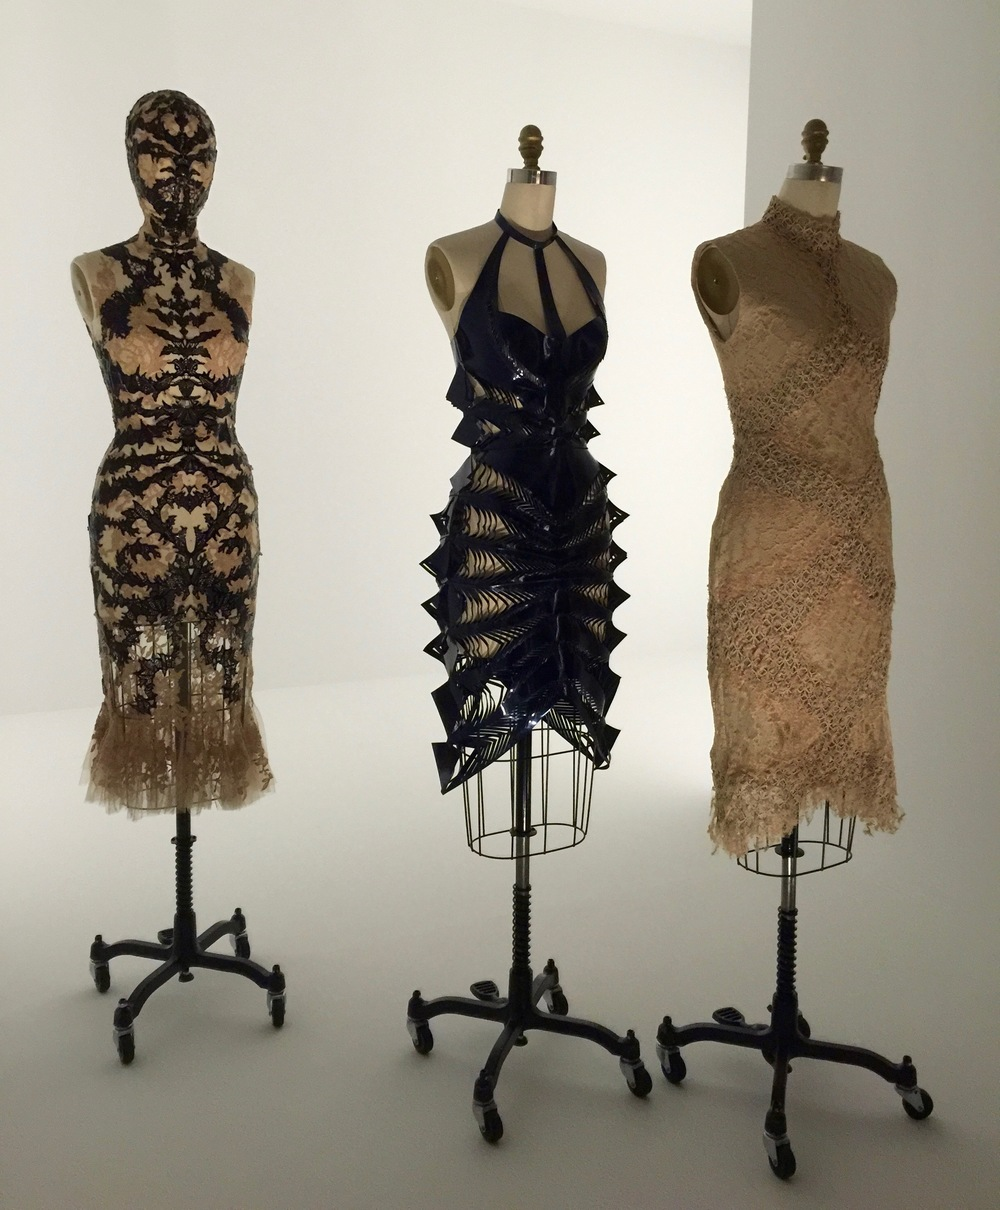 (l) ALEXANDER MCQUEEN, Sarah Burton DRESS, Spring/Summer 2012, pret-a-porter  Machine and hand-sewn nude silk lace bonded with laser-cut black patent leather hand-sewn godets of nude silk tulle, hand-appliquéd with nude silk lace motifs (c) Iris van Herpen DRESS, Spring/Summer 2015, pret-a-porter  Machine-sewn, laser-cut, bonded navy patent leather (r) Iris van Herpen DRESS, Spring/Summer 2016, pret-a-porter  Machine-sewn, bonded nude silk twill and cotton plain weave with overlay of nude cotton lace handwoven with laser-cut nude leather appliqué